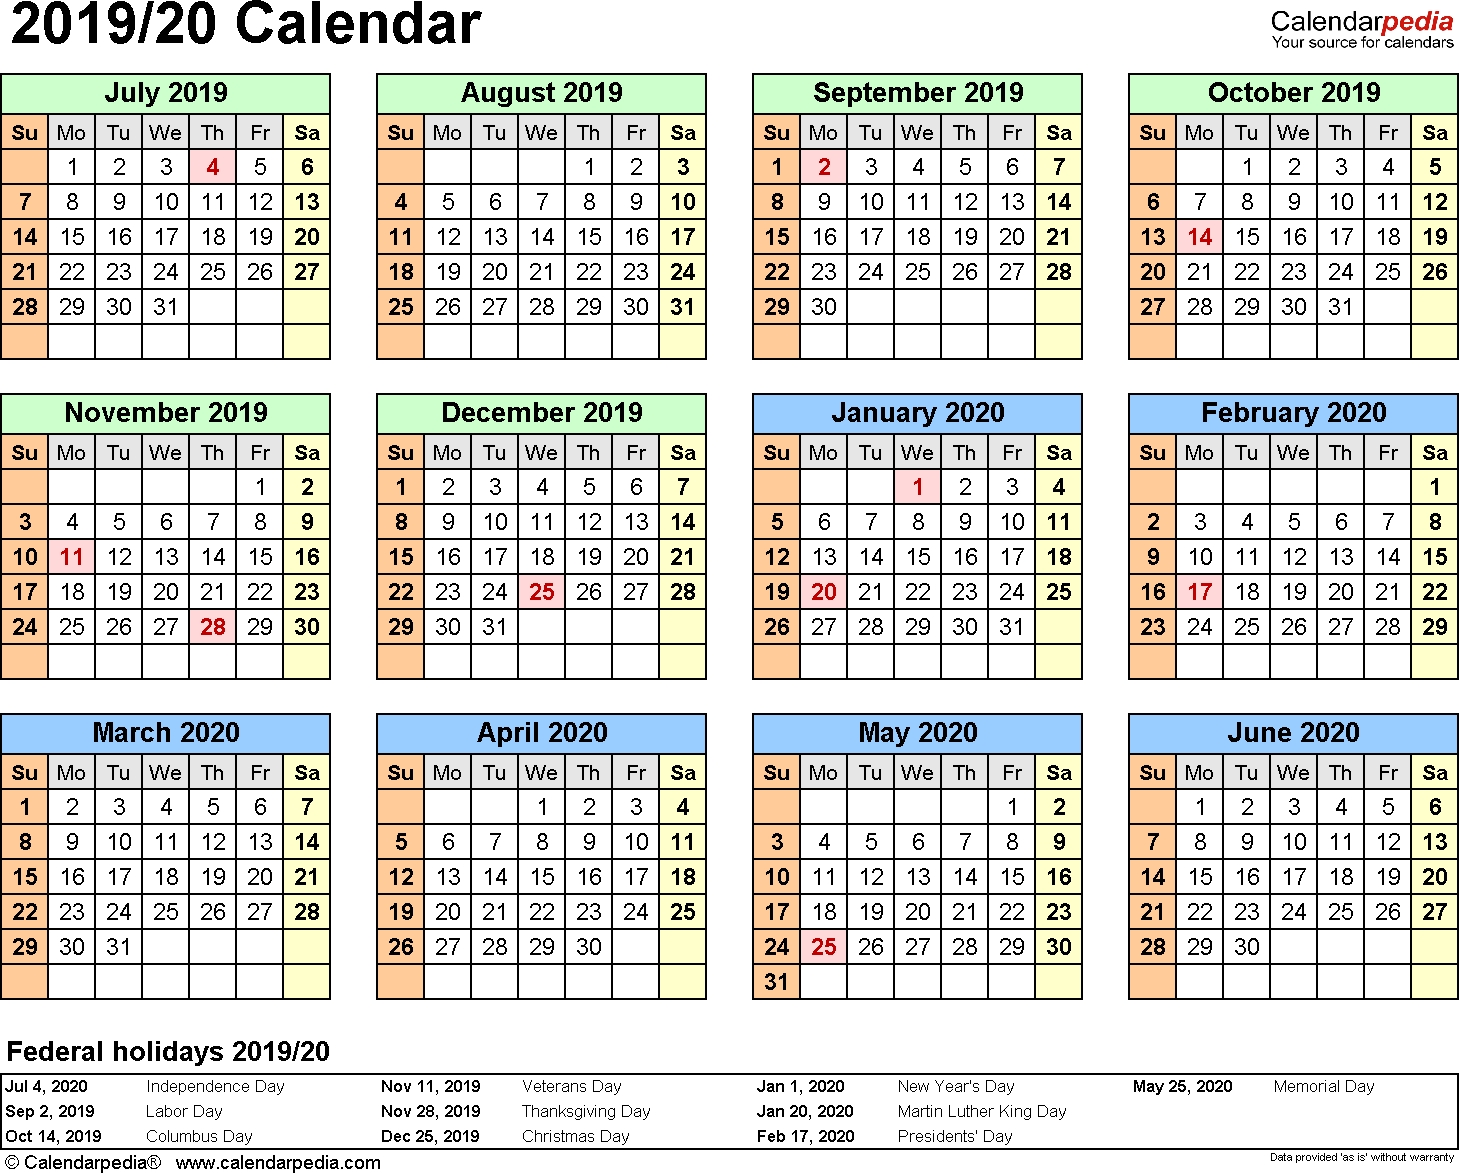 Split Year Calendar 2019/20 (July To June) - Word Templates for Free Half Page Calendars 2019-2020